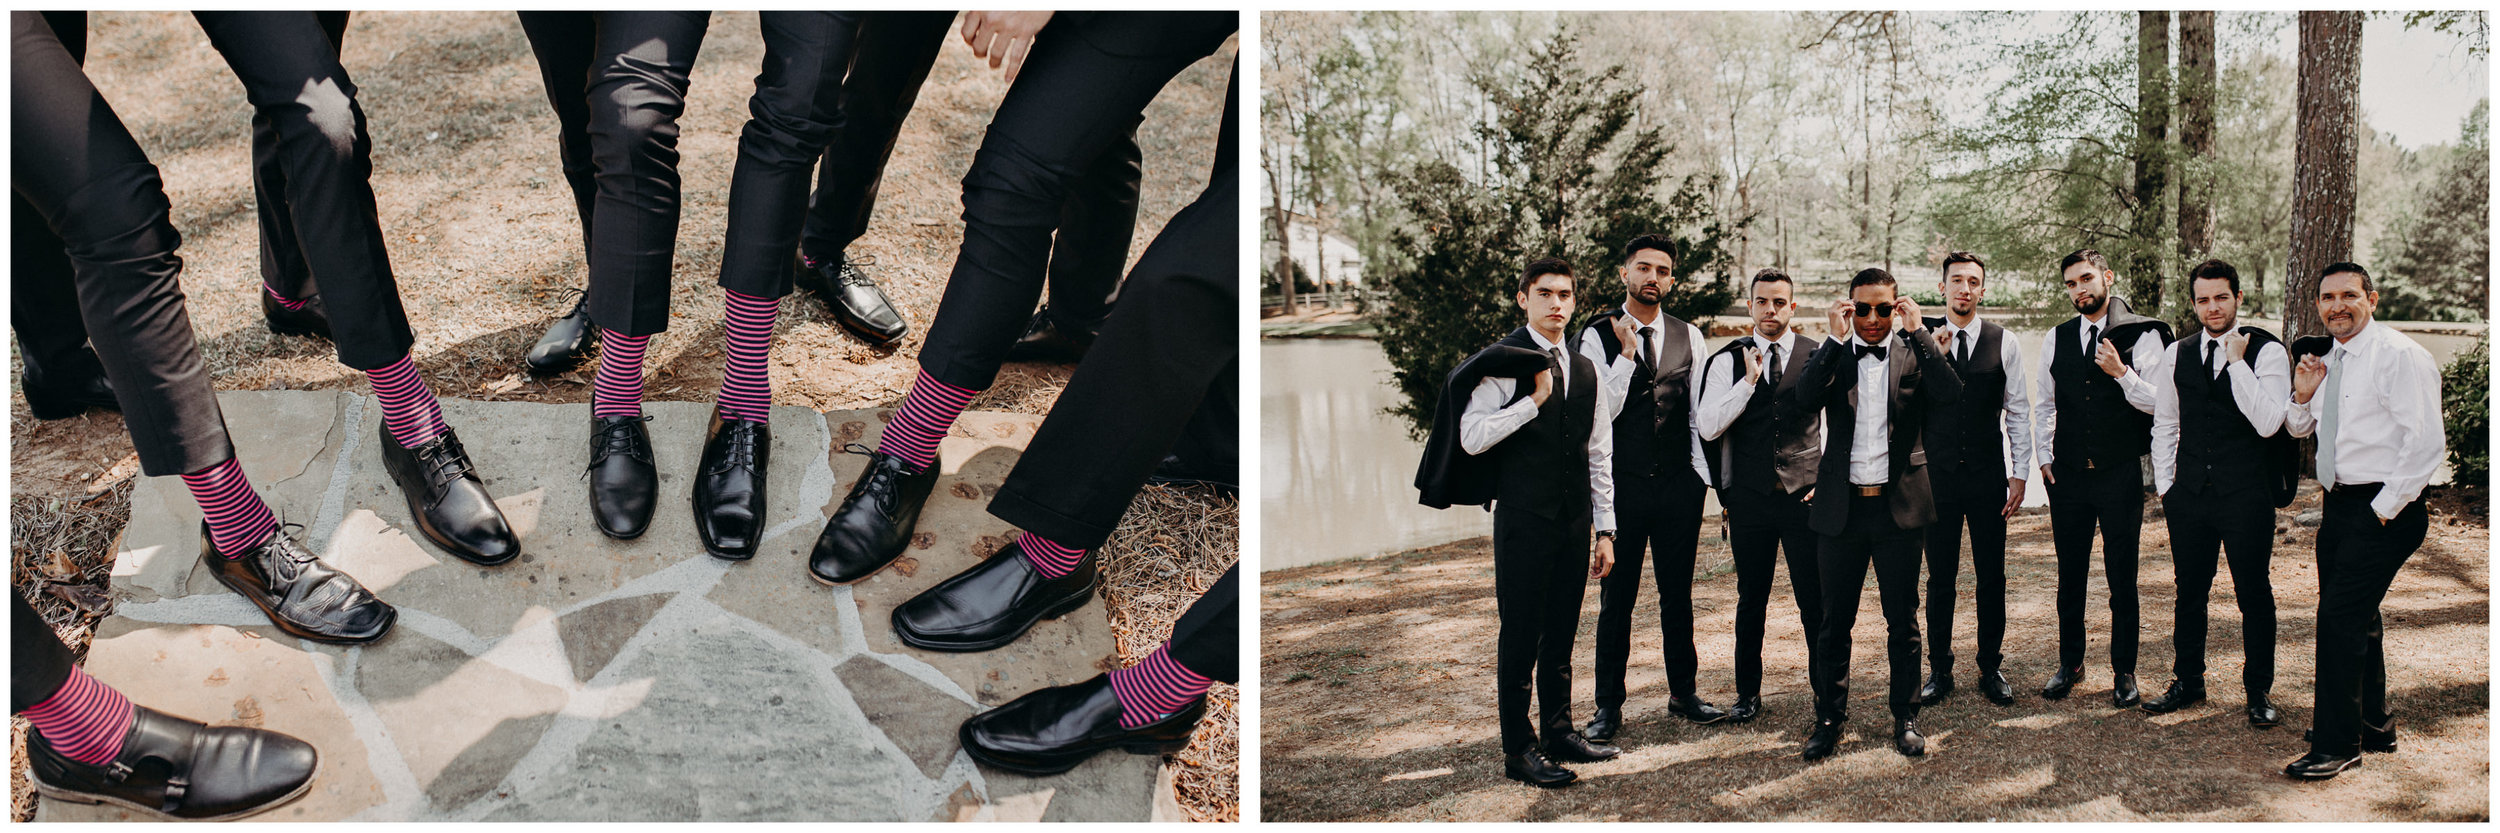 10 - Little River Farms - first look - Atlanta - Wedding Venue - Atlanta Wedding Photographer - Georgia weddings details wedding dress shoes gather .jpg